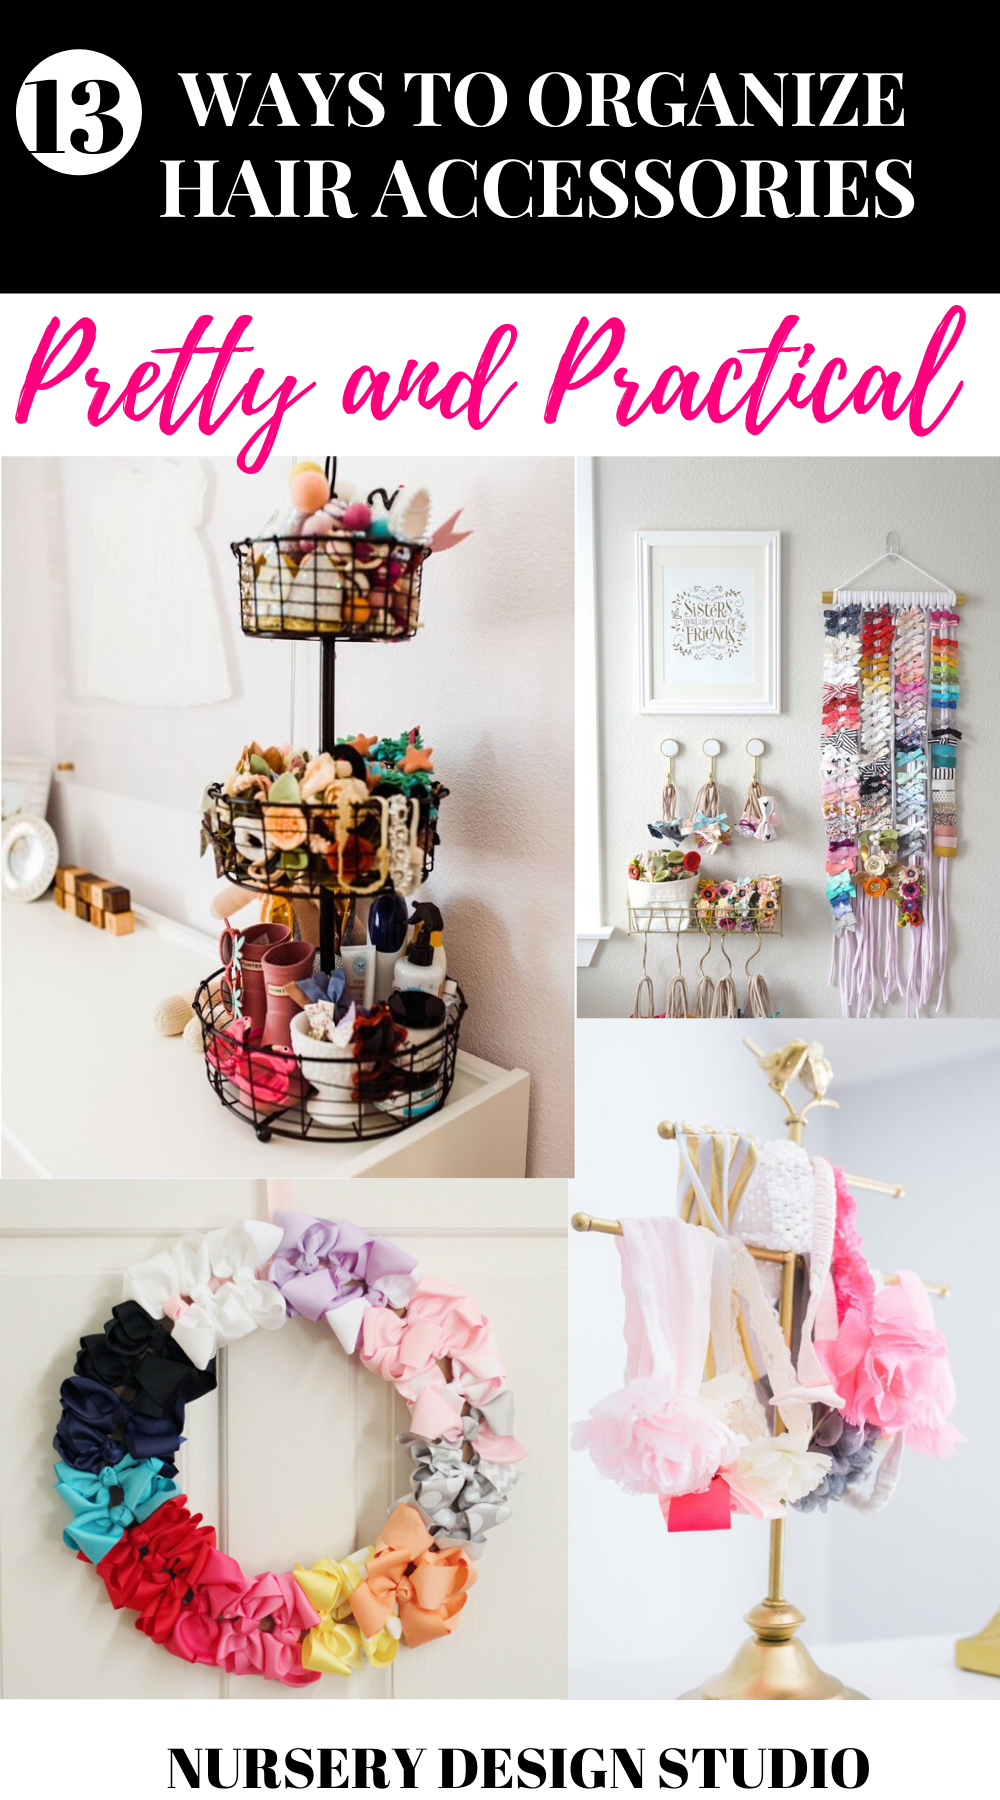 WAYS TO ORGANIZE HAIR ACCESSORIES